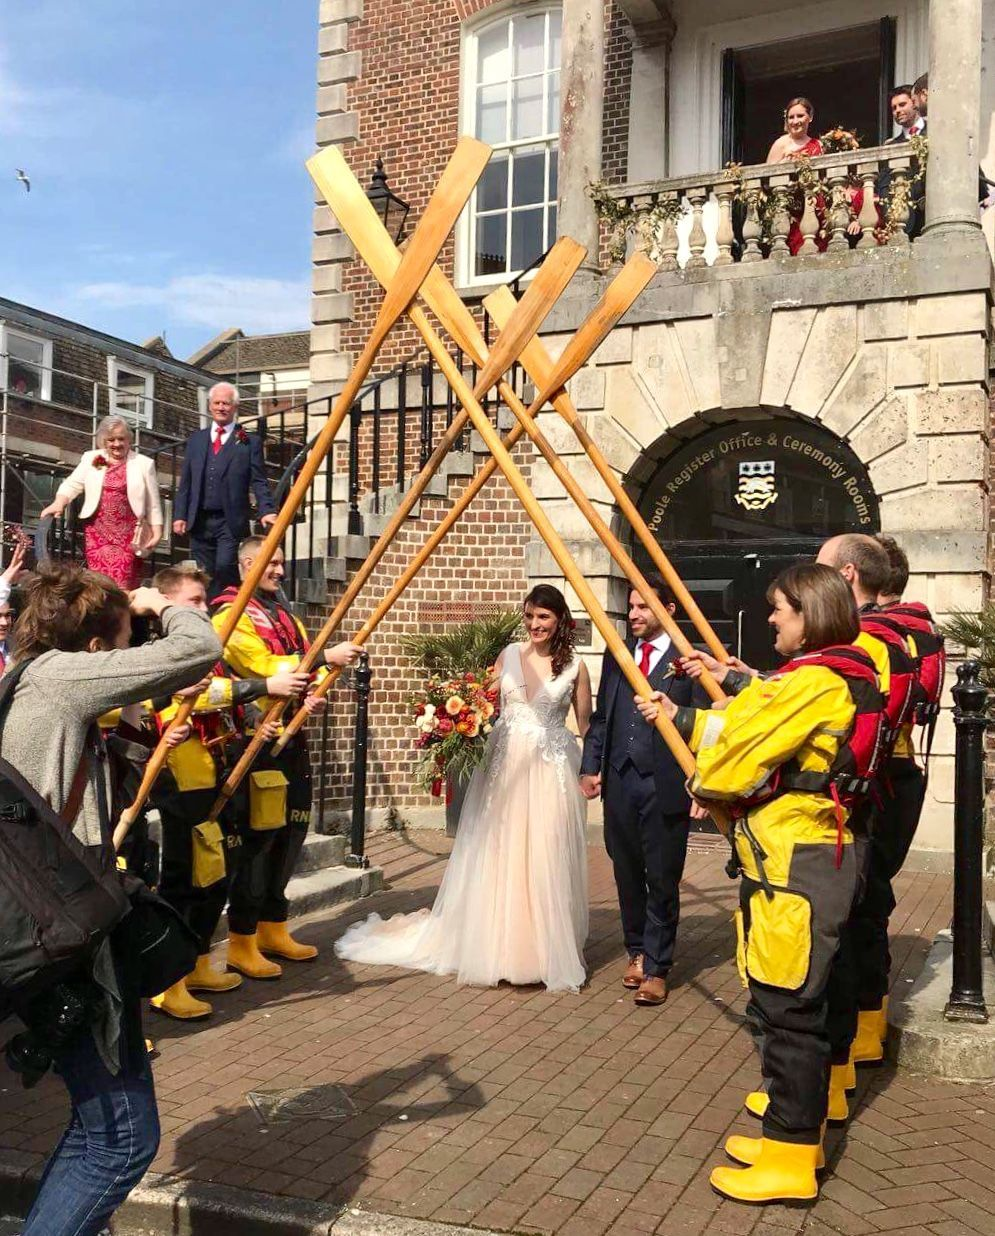 Raising the oars at the wedding in Poole